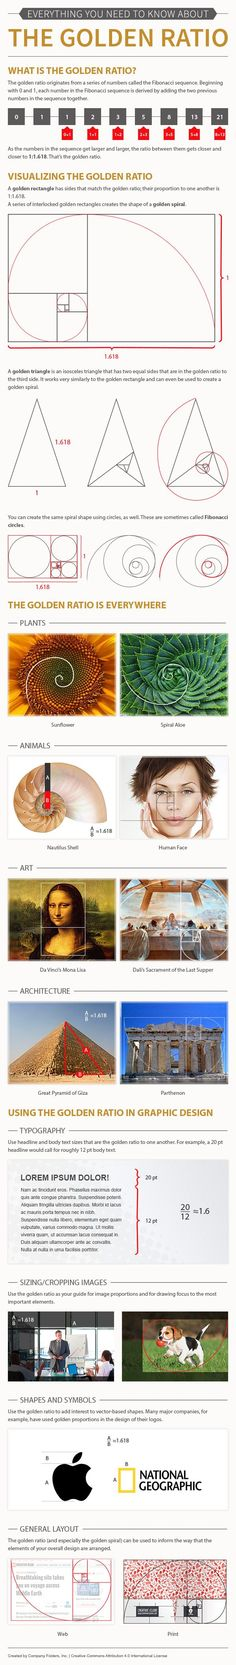 Psychology infographic and charts Psychology : The golden ratio for design…. Infographic Description Psychology infographic and charts The golden ratio for design…. Infographic Description The golden ratio for design. Logo Typo, Typography, Graphisches Design, Logo Design, Design Ideas, Design Trends, Interior Design, Design Theory, Art Graphique